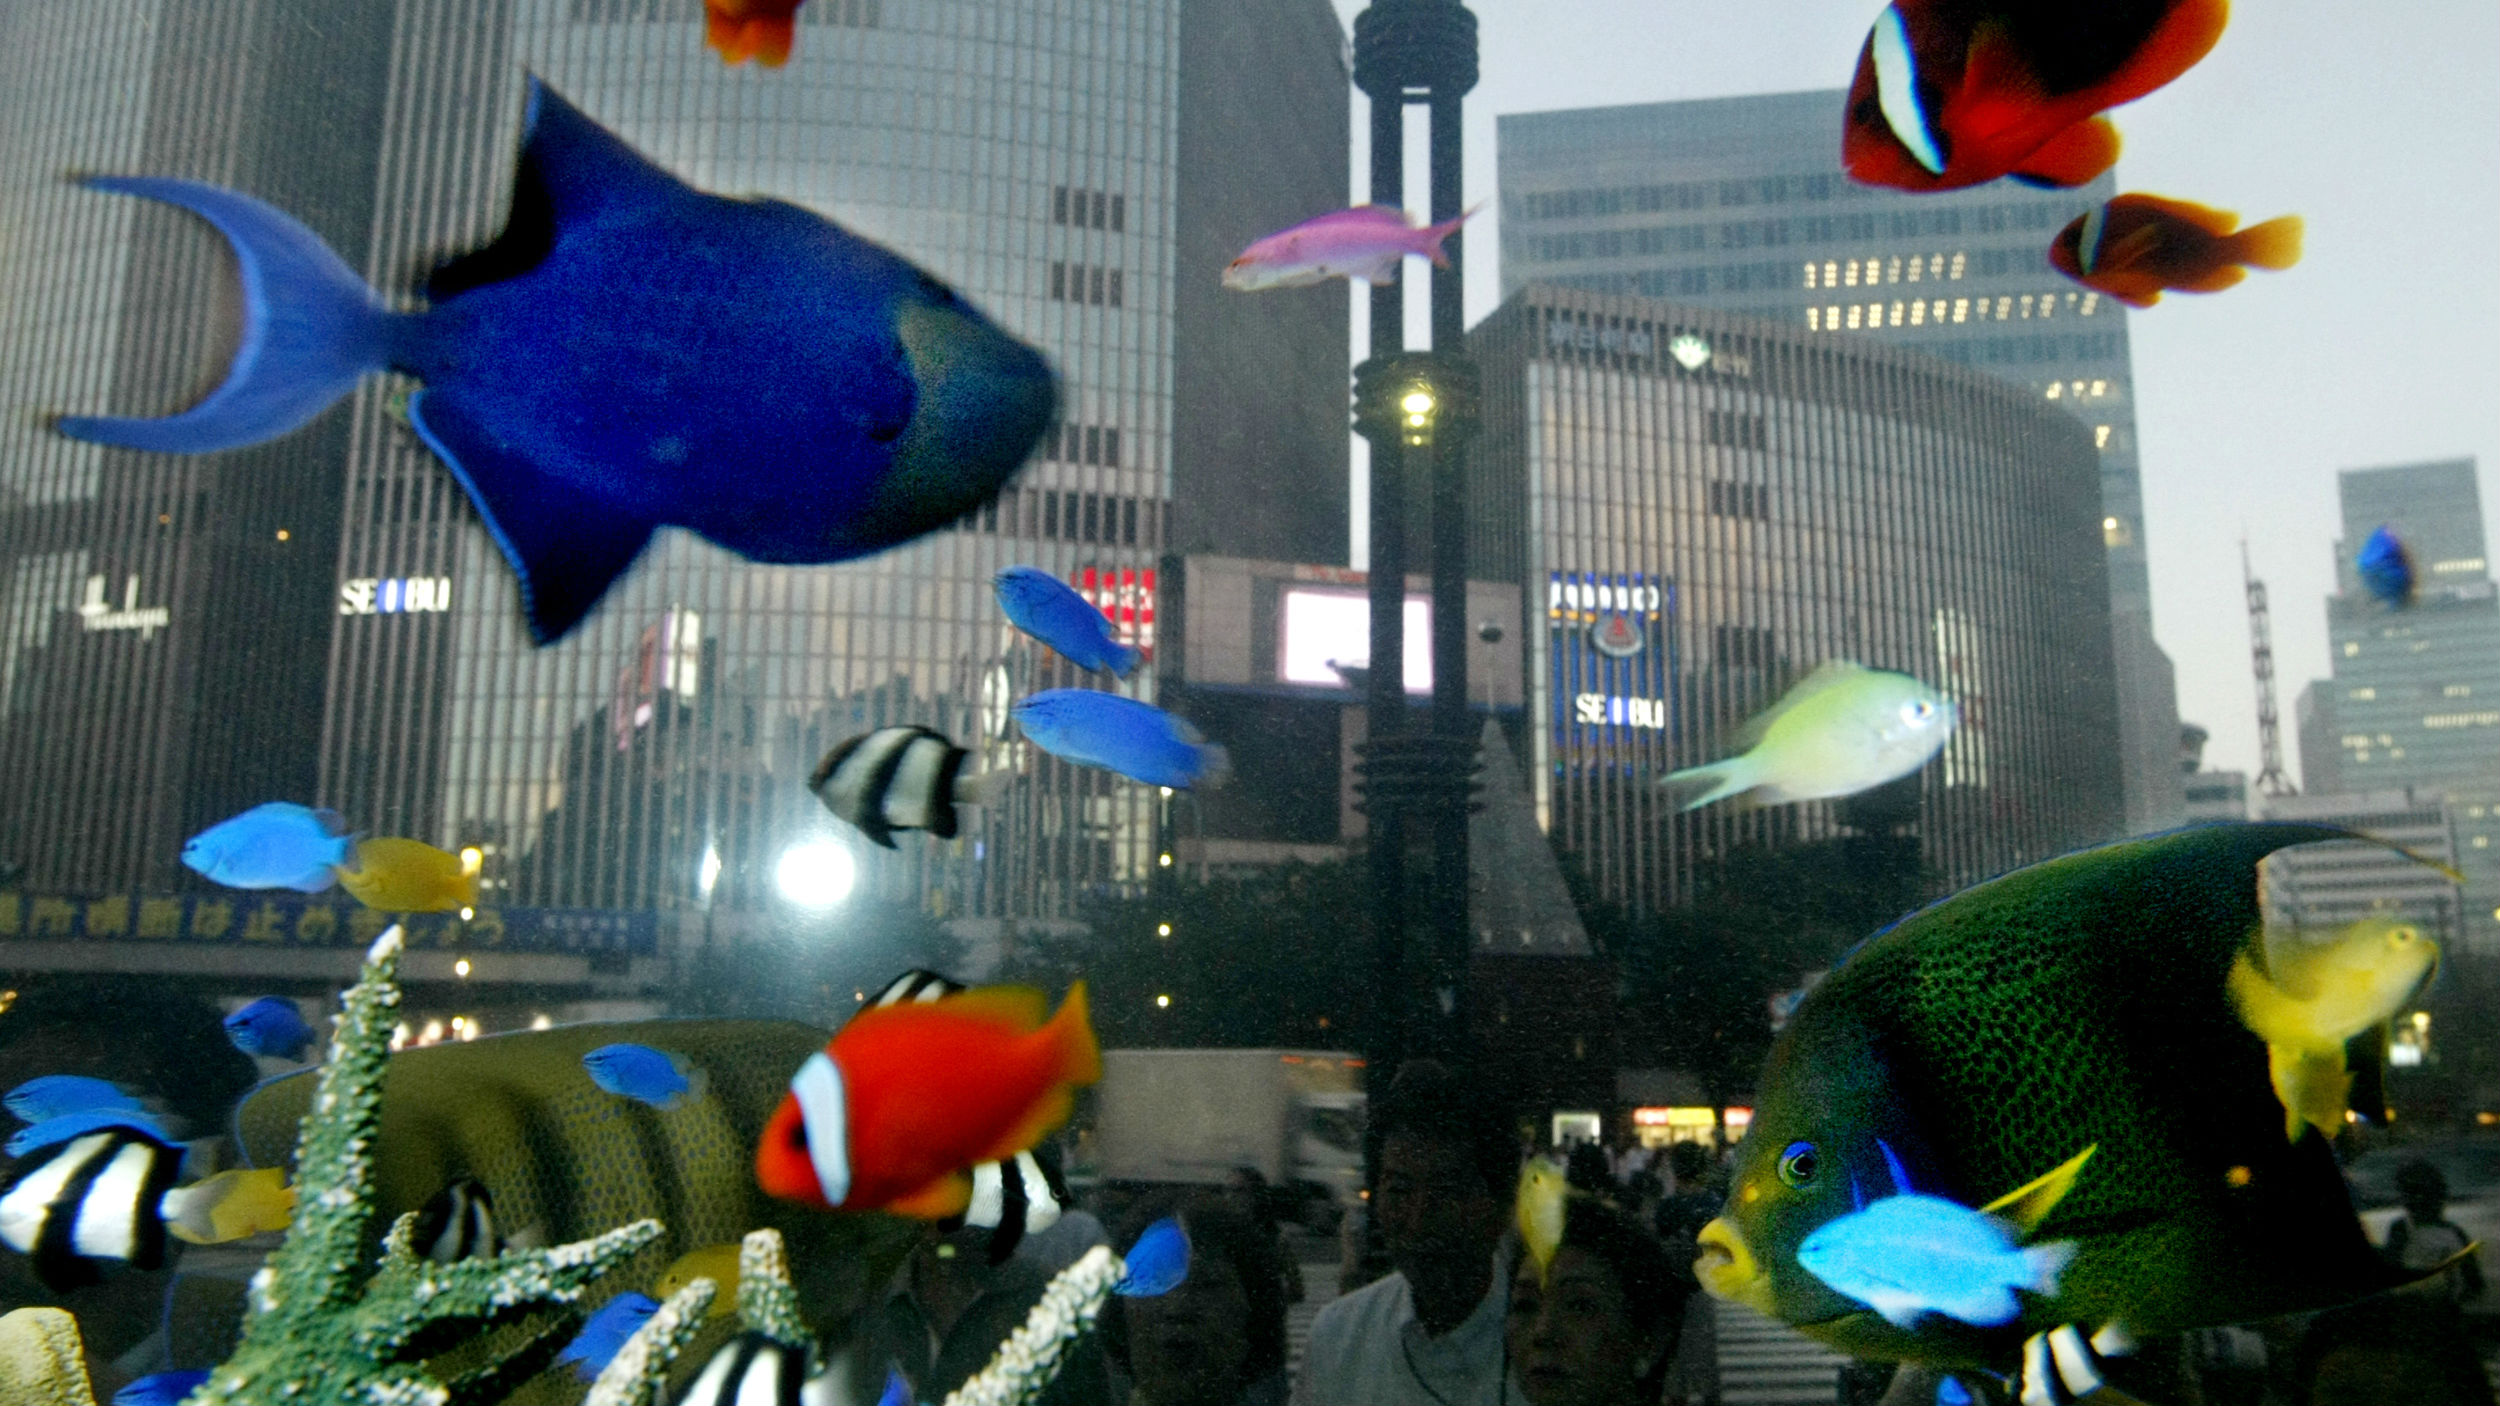 Tropical fish swim in an aquarium looking out onto a city.